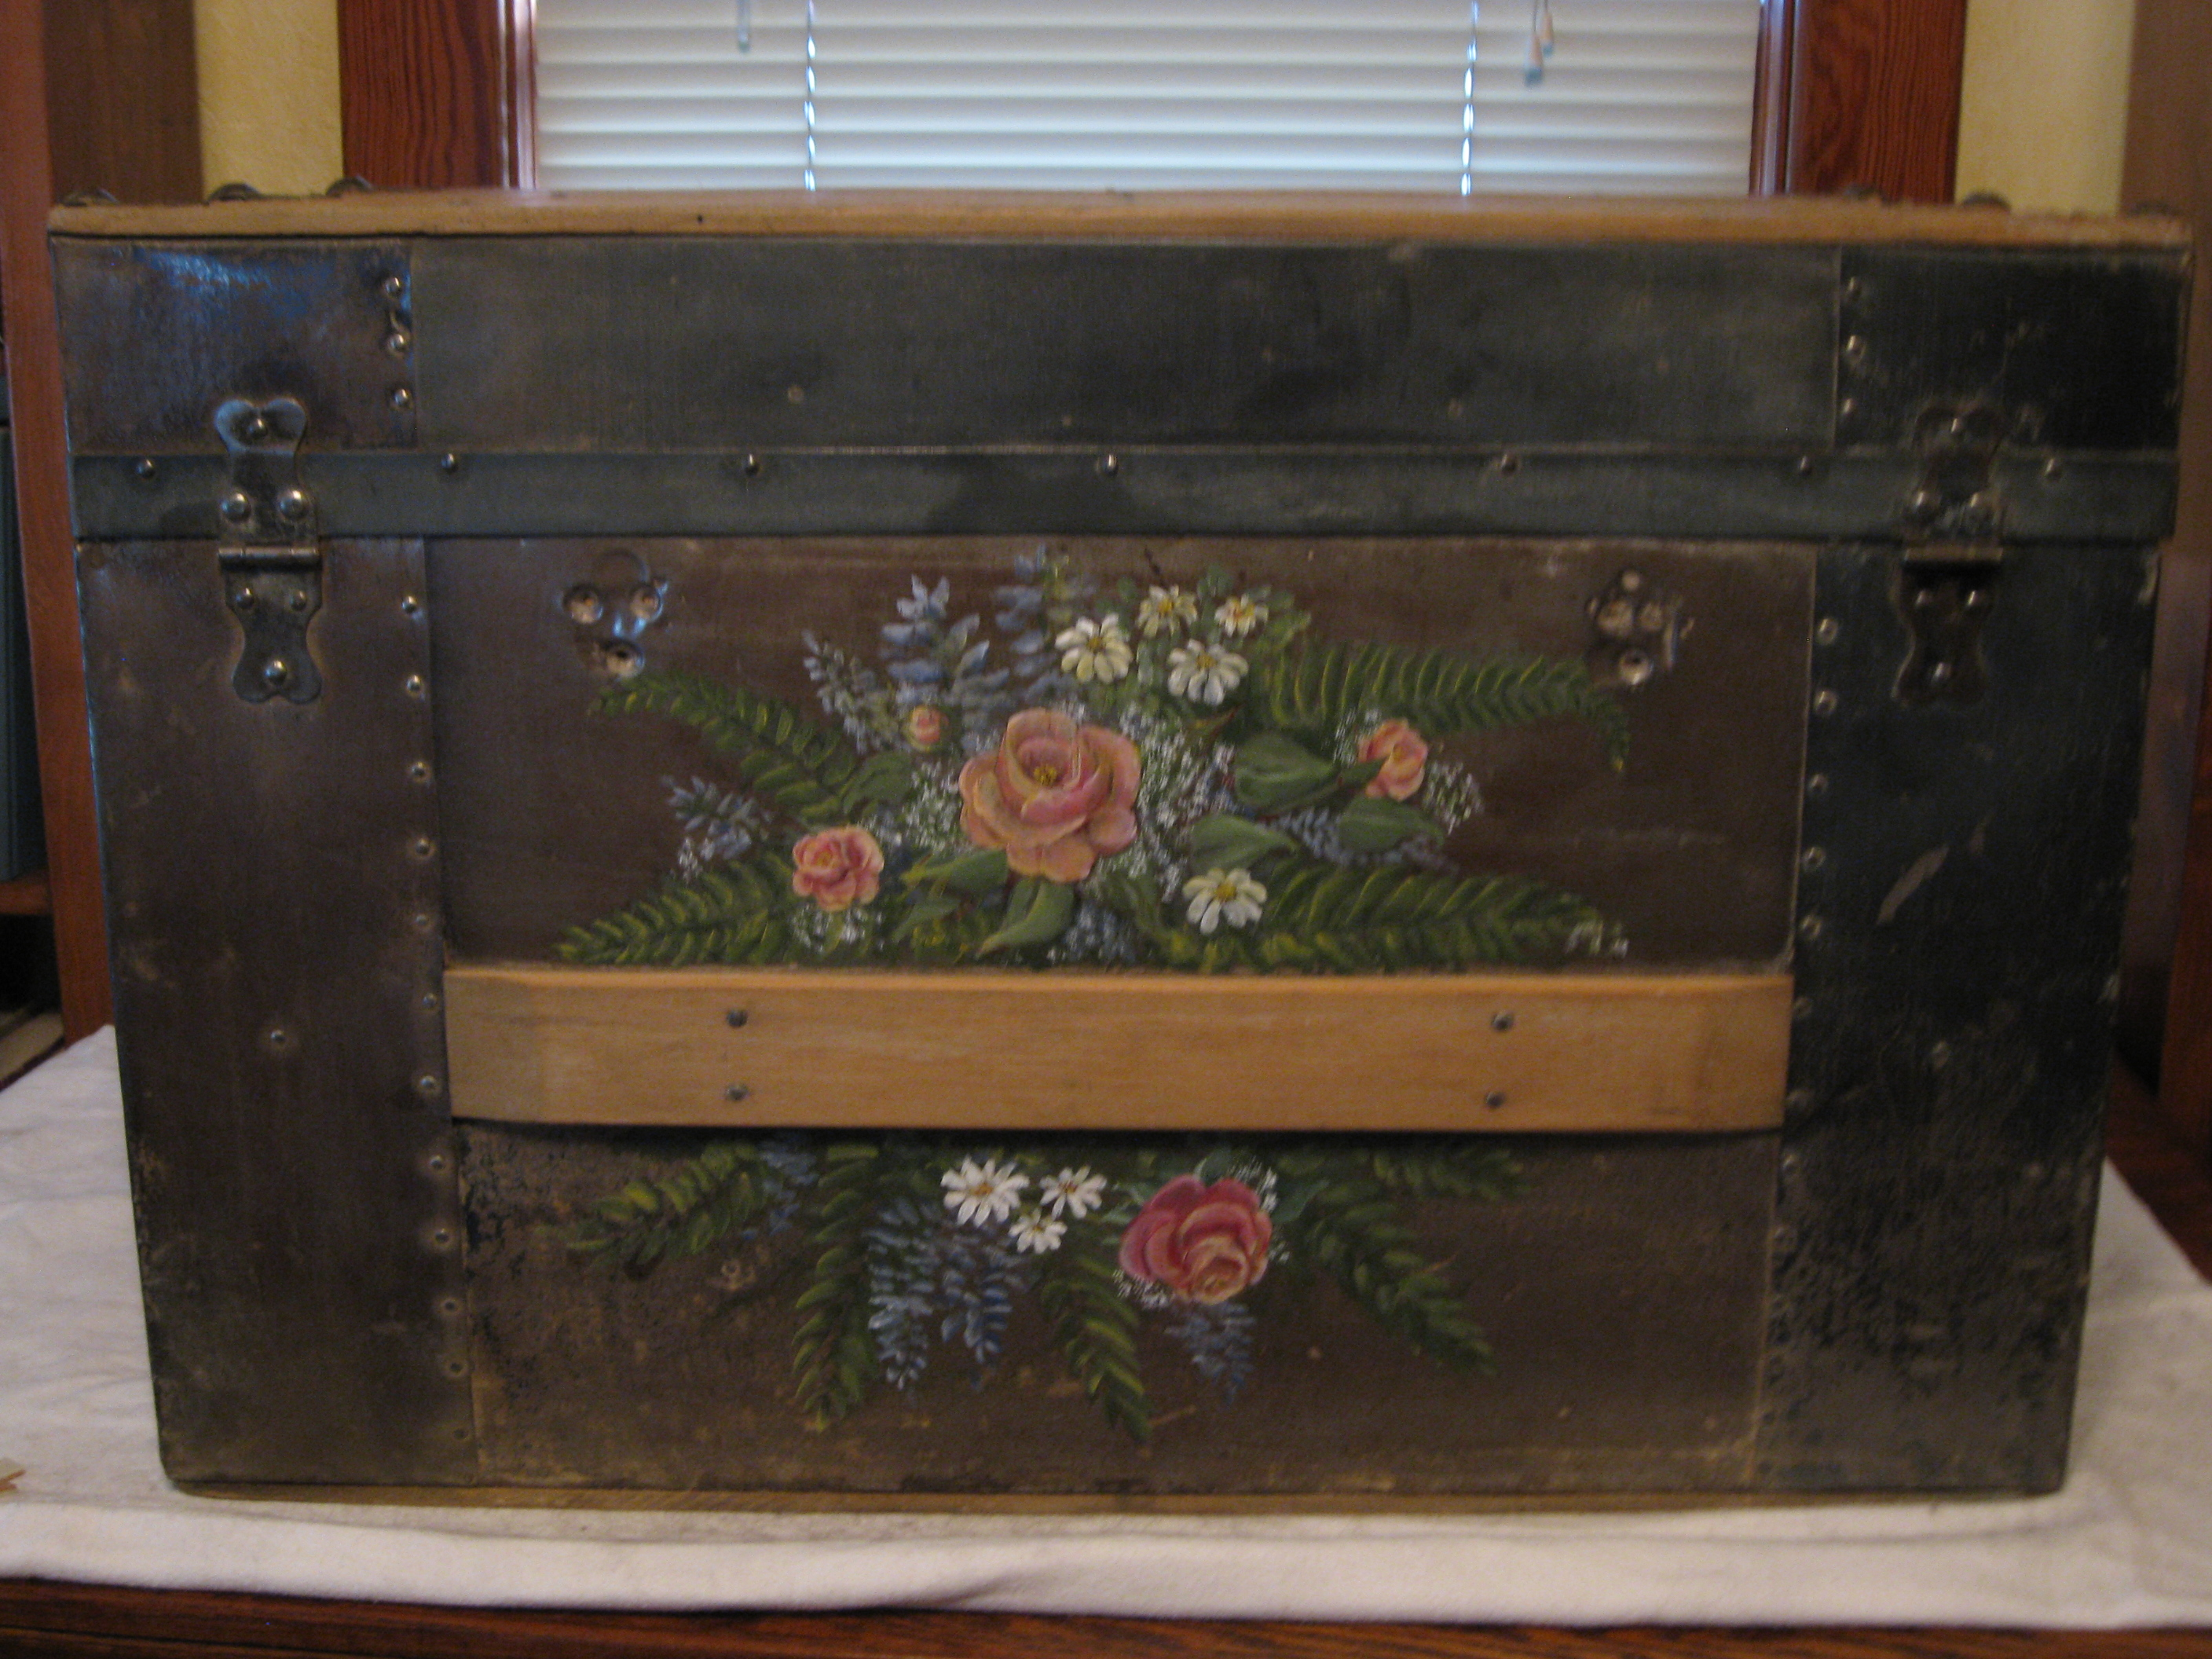 The client wanted an exuberant display of flowers sprayed across this old family trunk